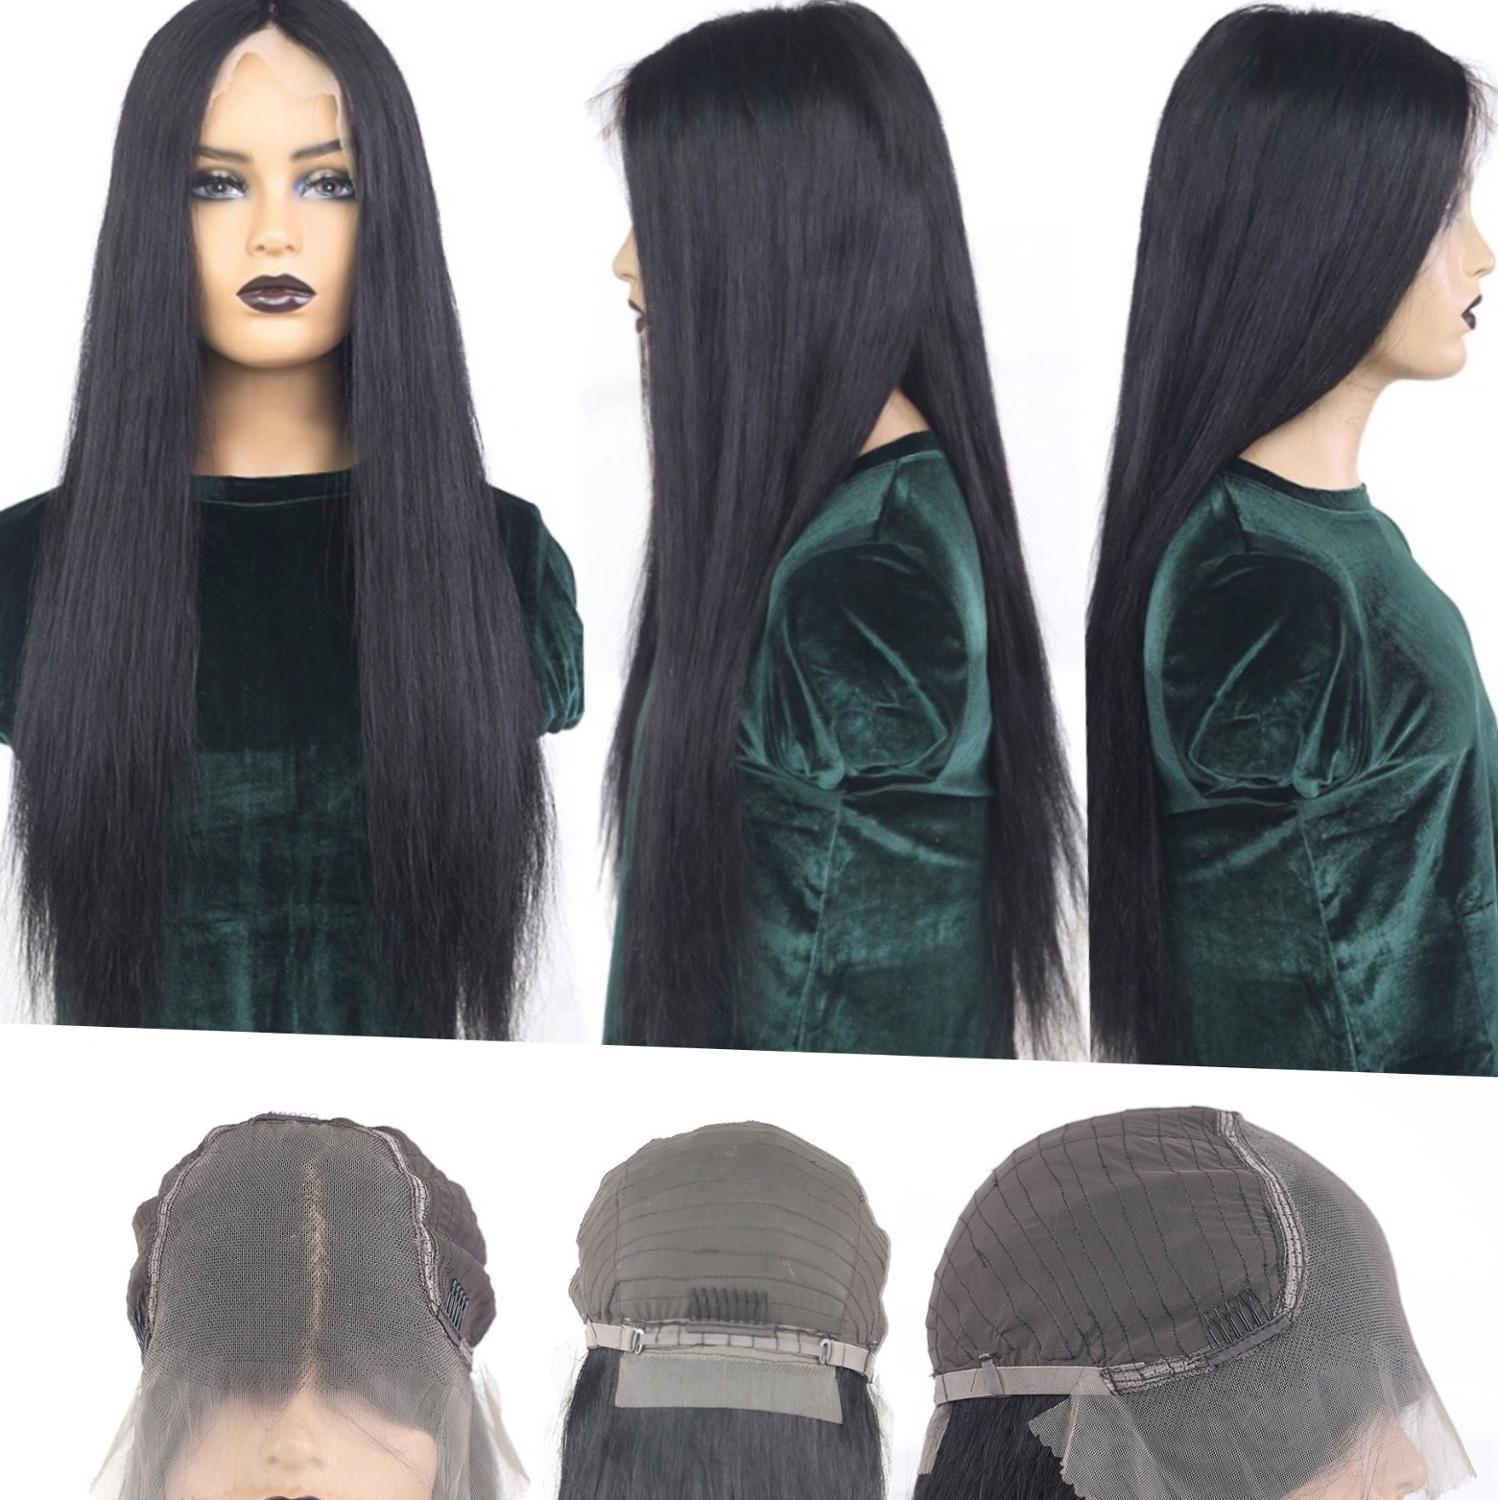 【IJOY】13x6 Lace Front Wig 18''-32'' Straight Human Hair Wigs Lace Front Brazilian Wig Natural Hair 150% Remy Pre-Plucked Winter